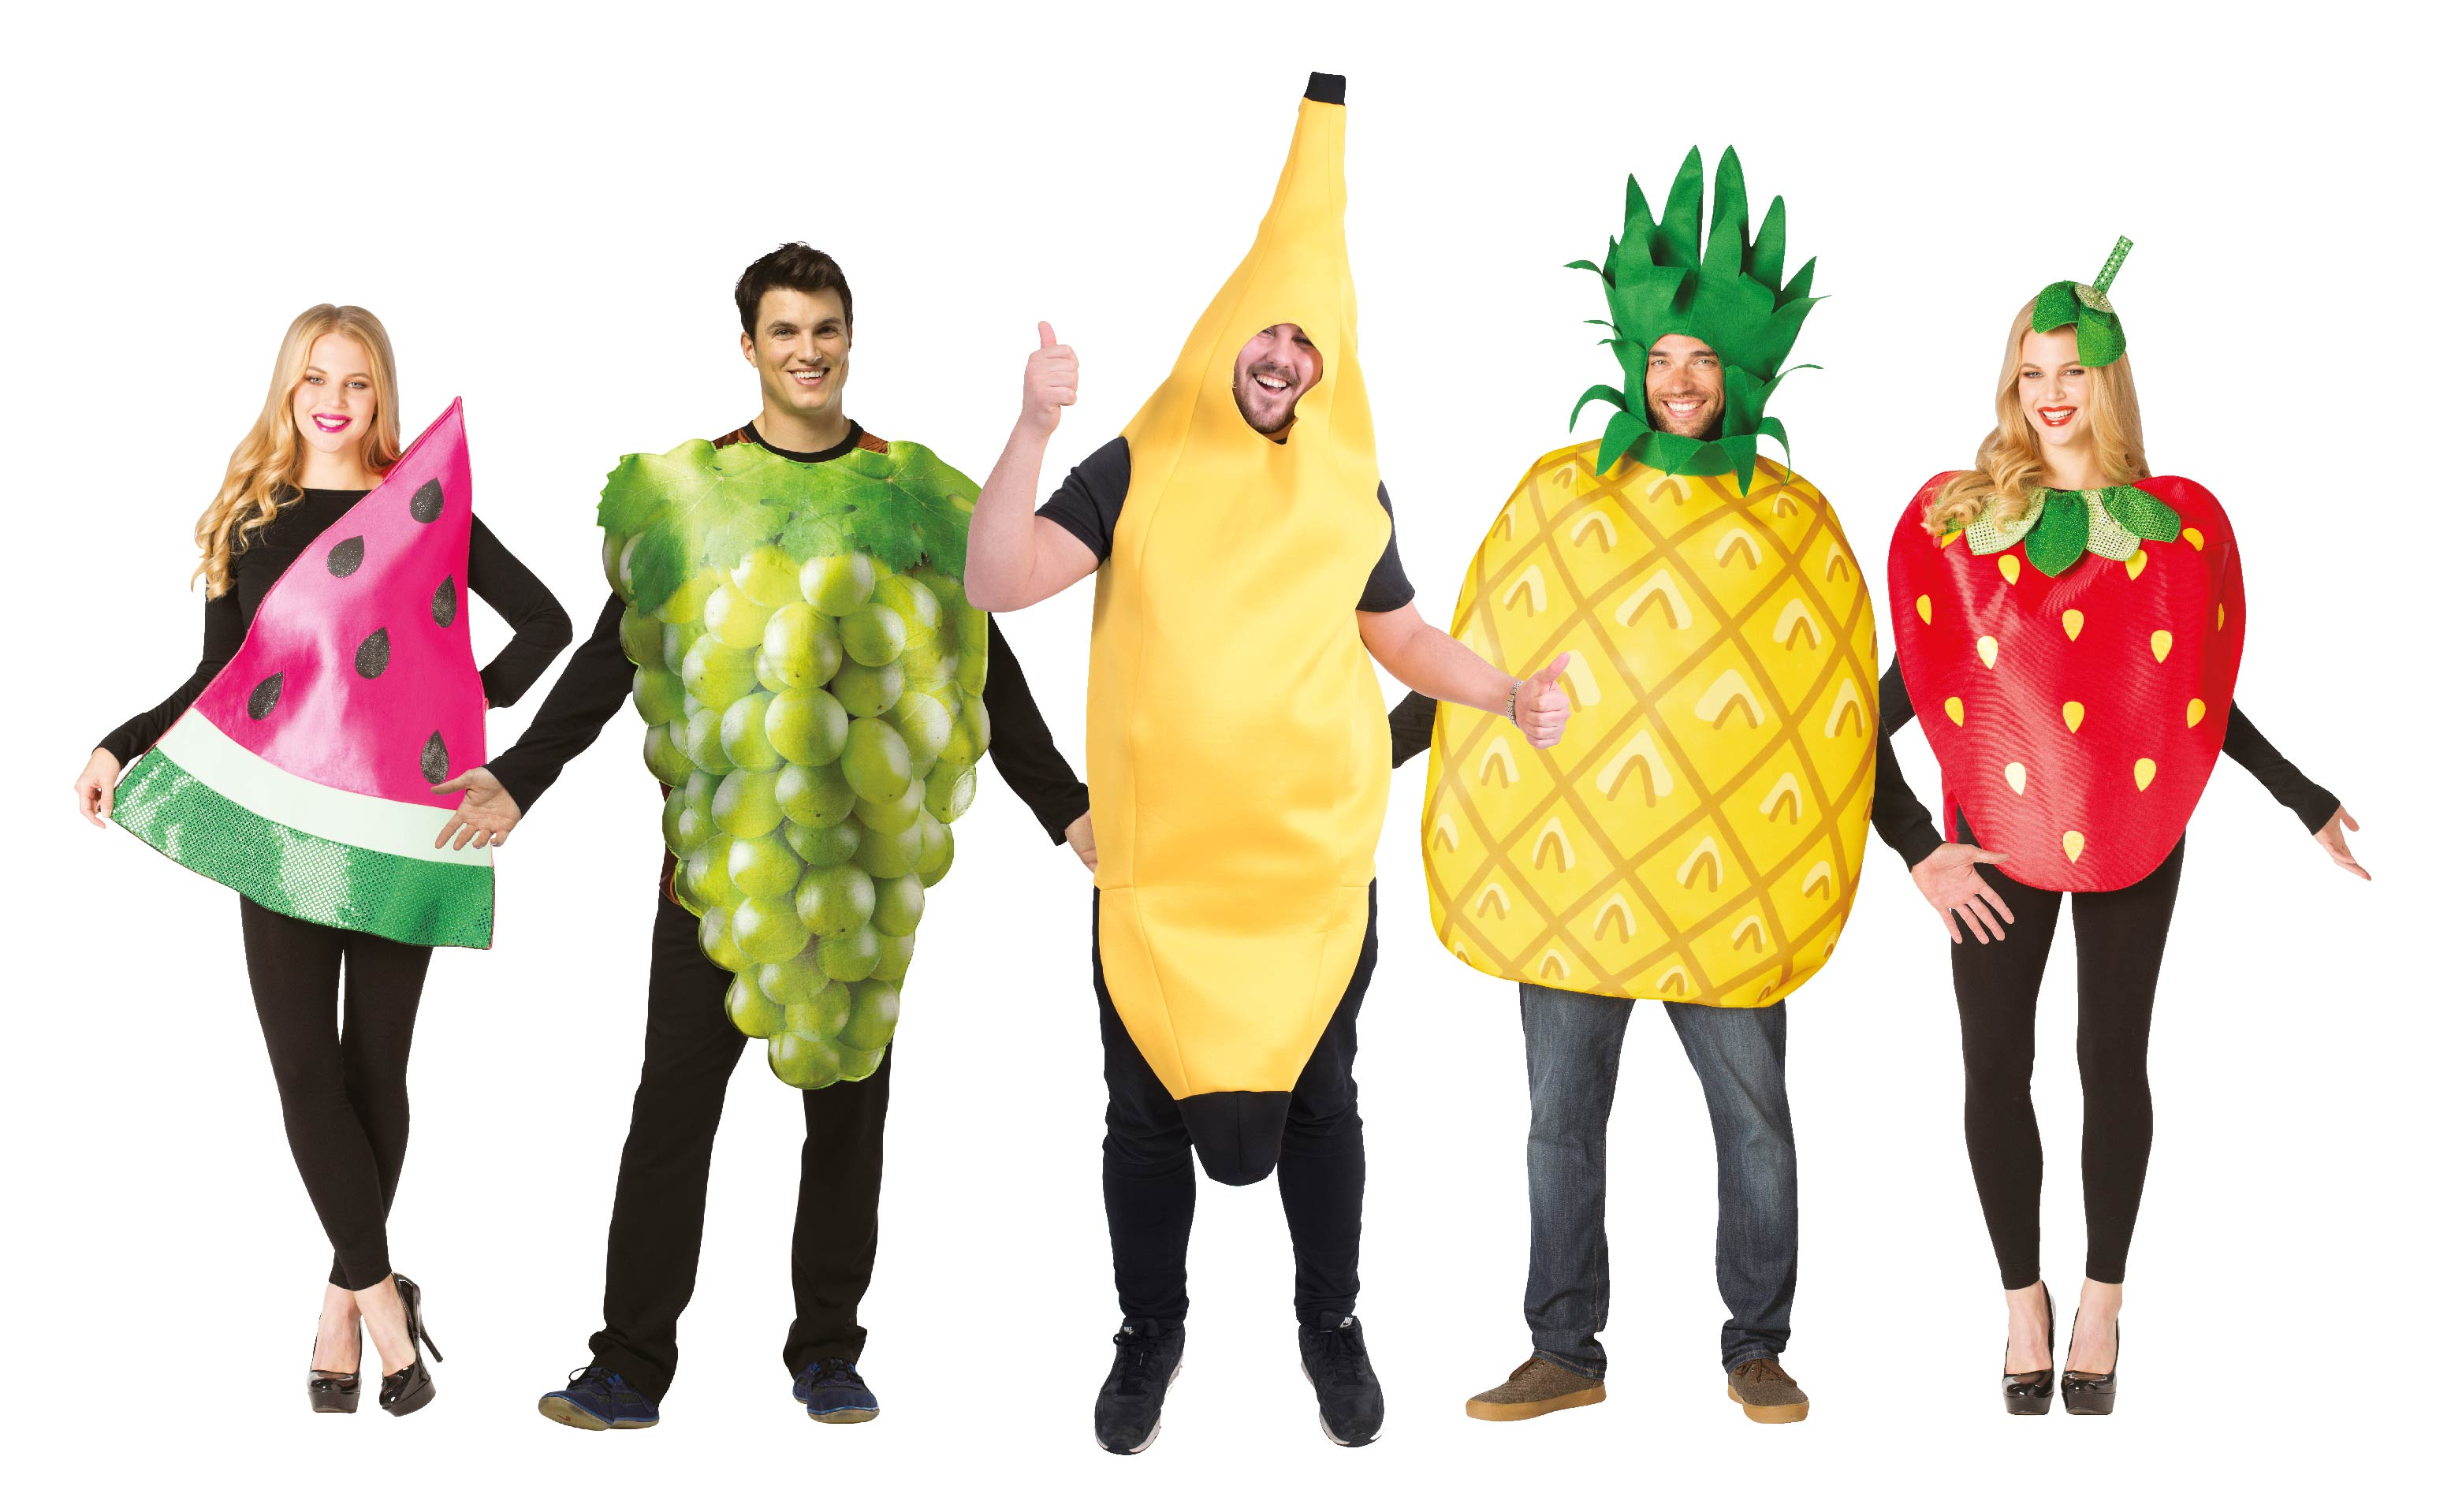 Group of people wearing different fruit costumes including an apple, strawberry, pineapple, grapes, banana and watermelon.